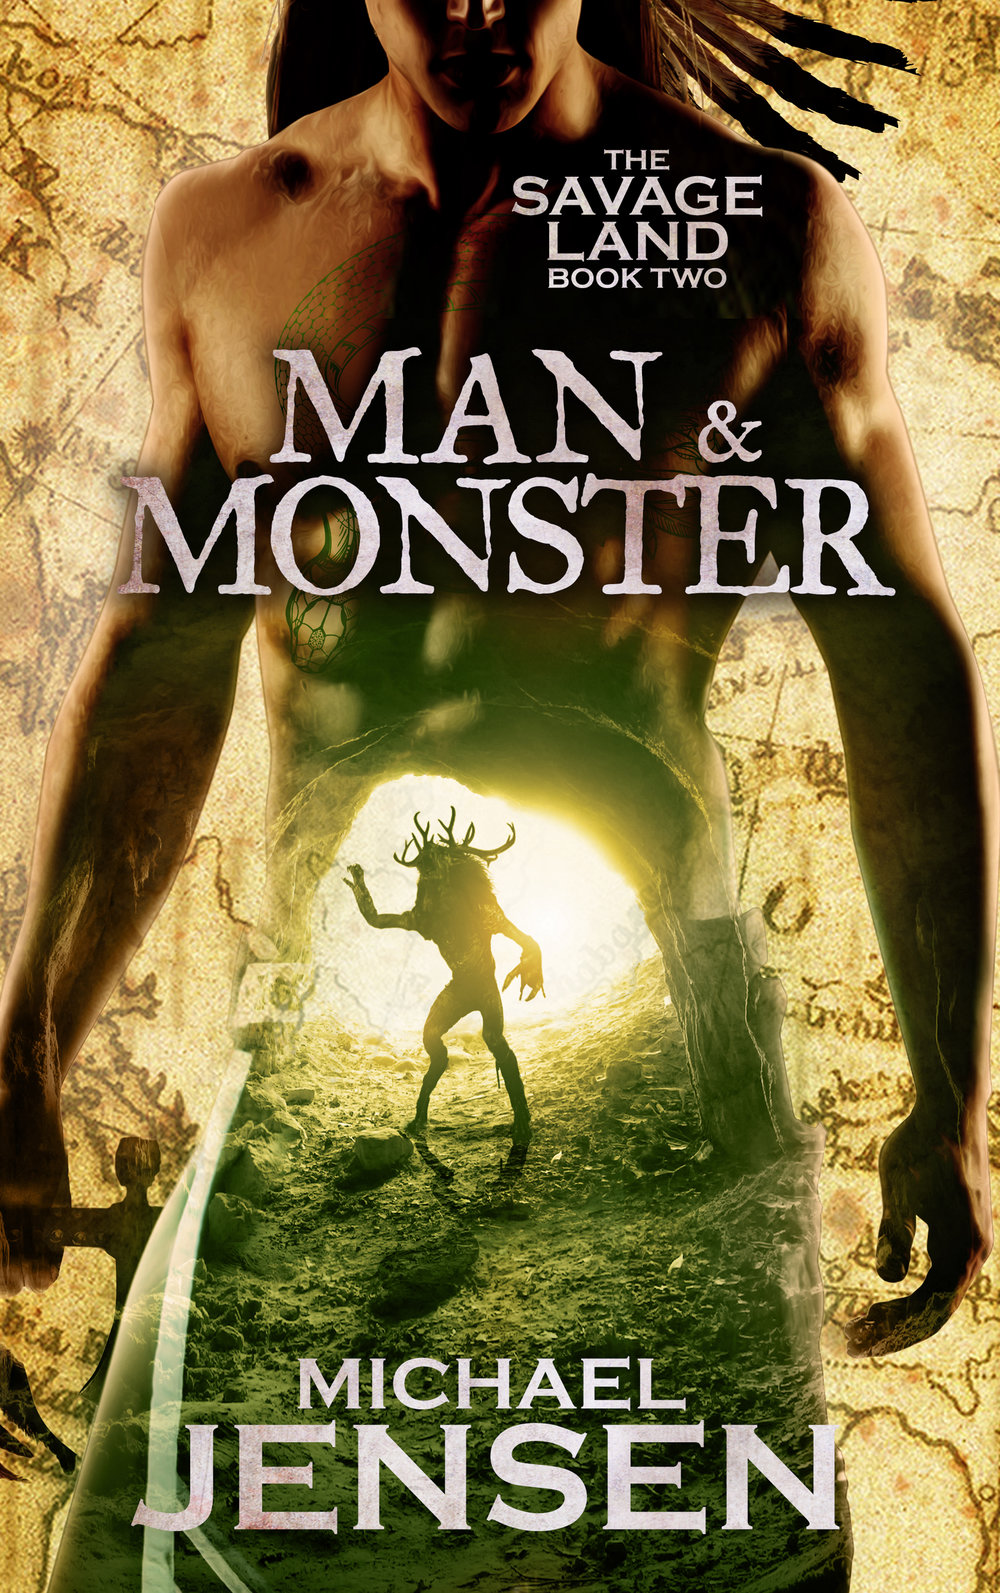 Man & Monster - Ebook.jpg